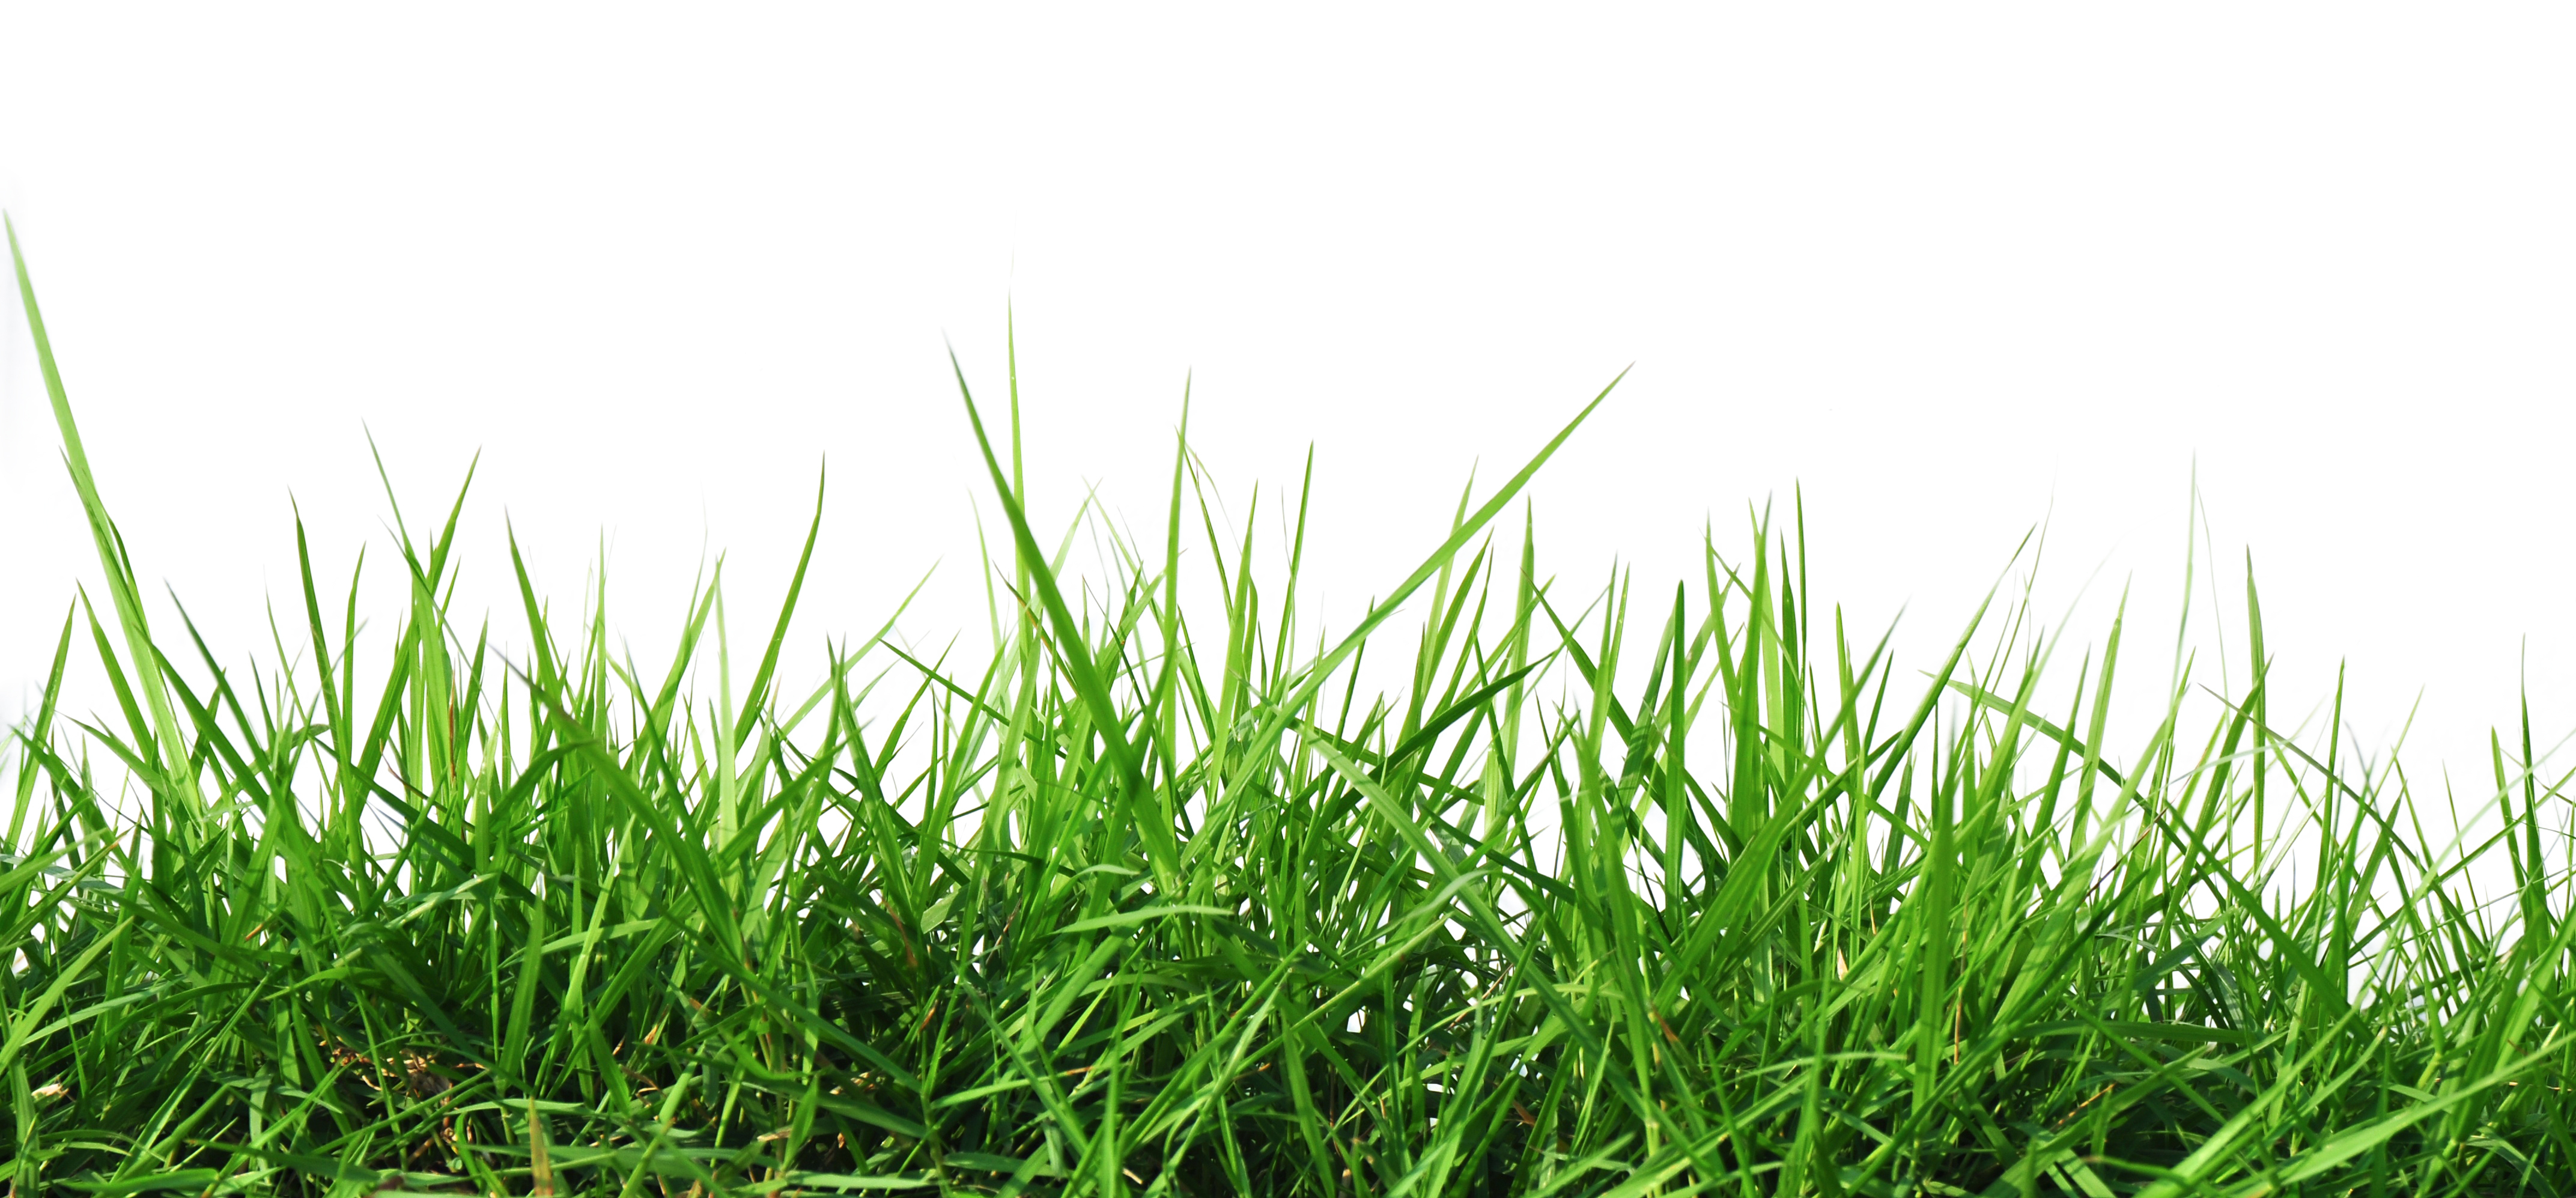 Quotes | Mynameishety - Grass HD PNG